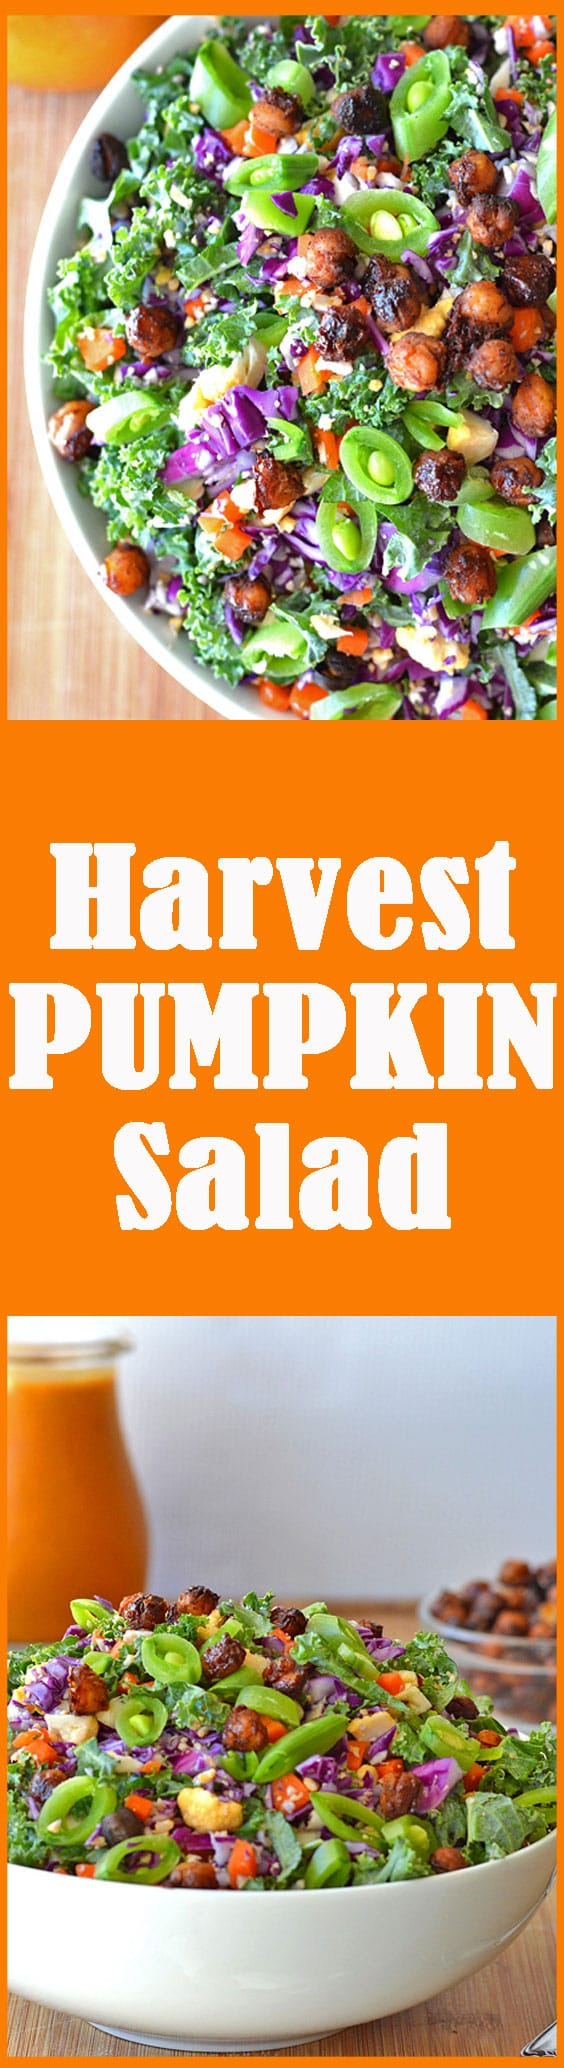 Harvest Pumpkin Salad